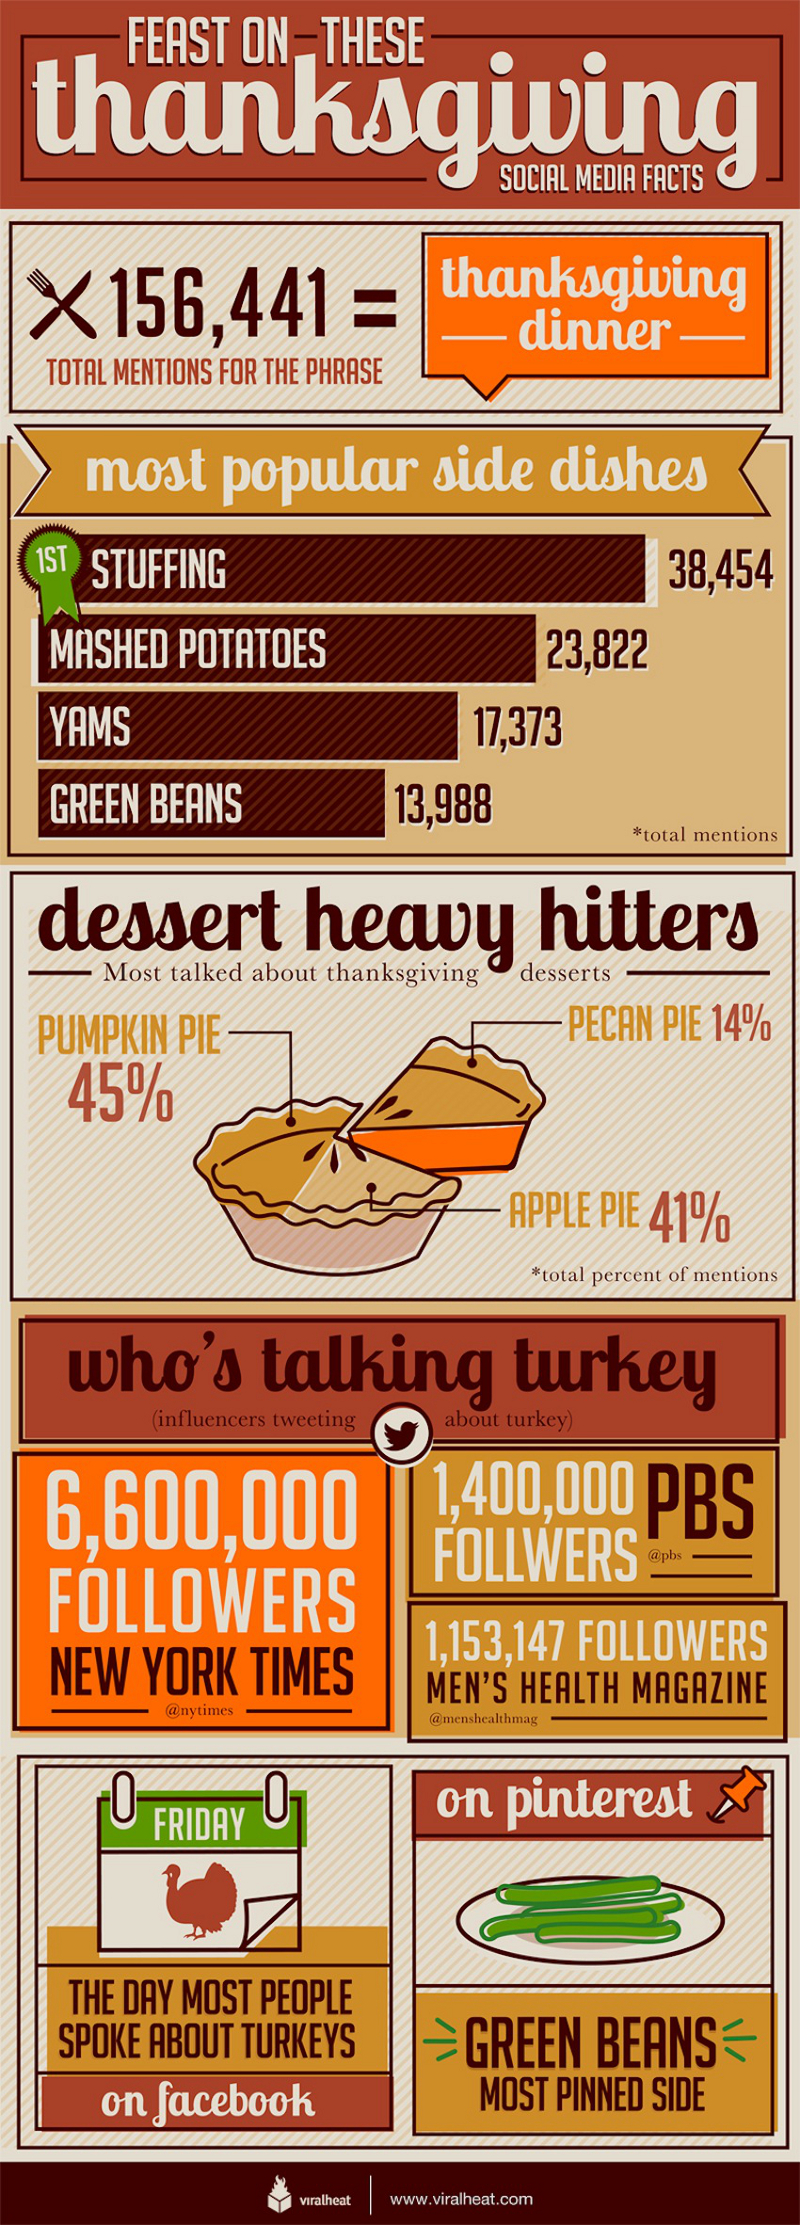 Thanksgiving facts and trends